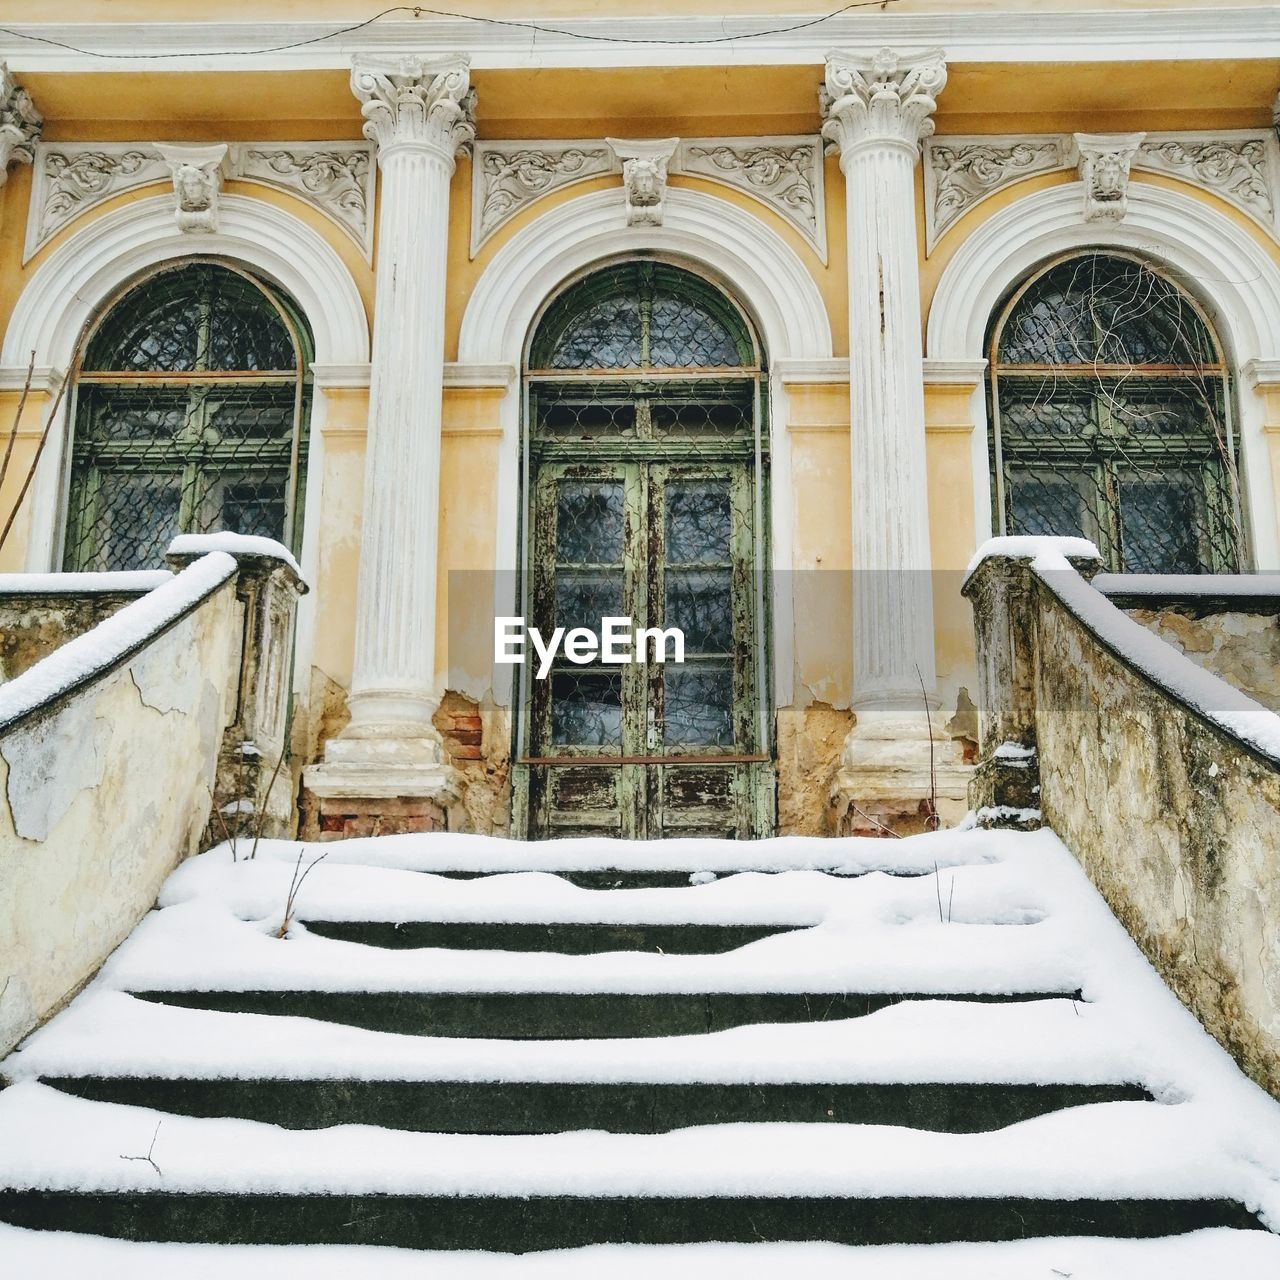 built structure, architecture, building exterior, arch, building, snow, window, no people, winter, cold temperature, day, entrance, door, railing, nature, staircase, outdoors, closed, white color, architectural column